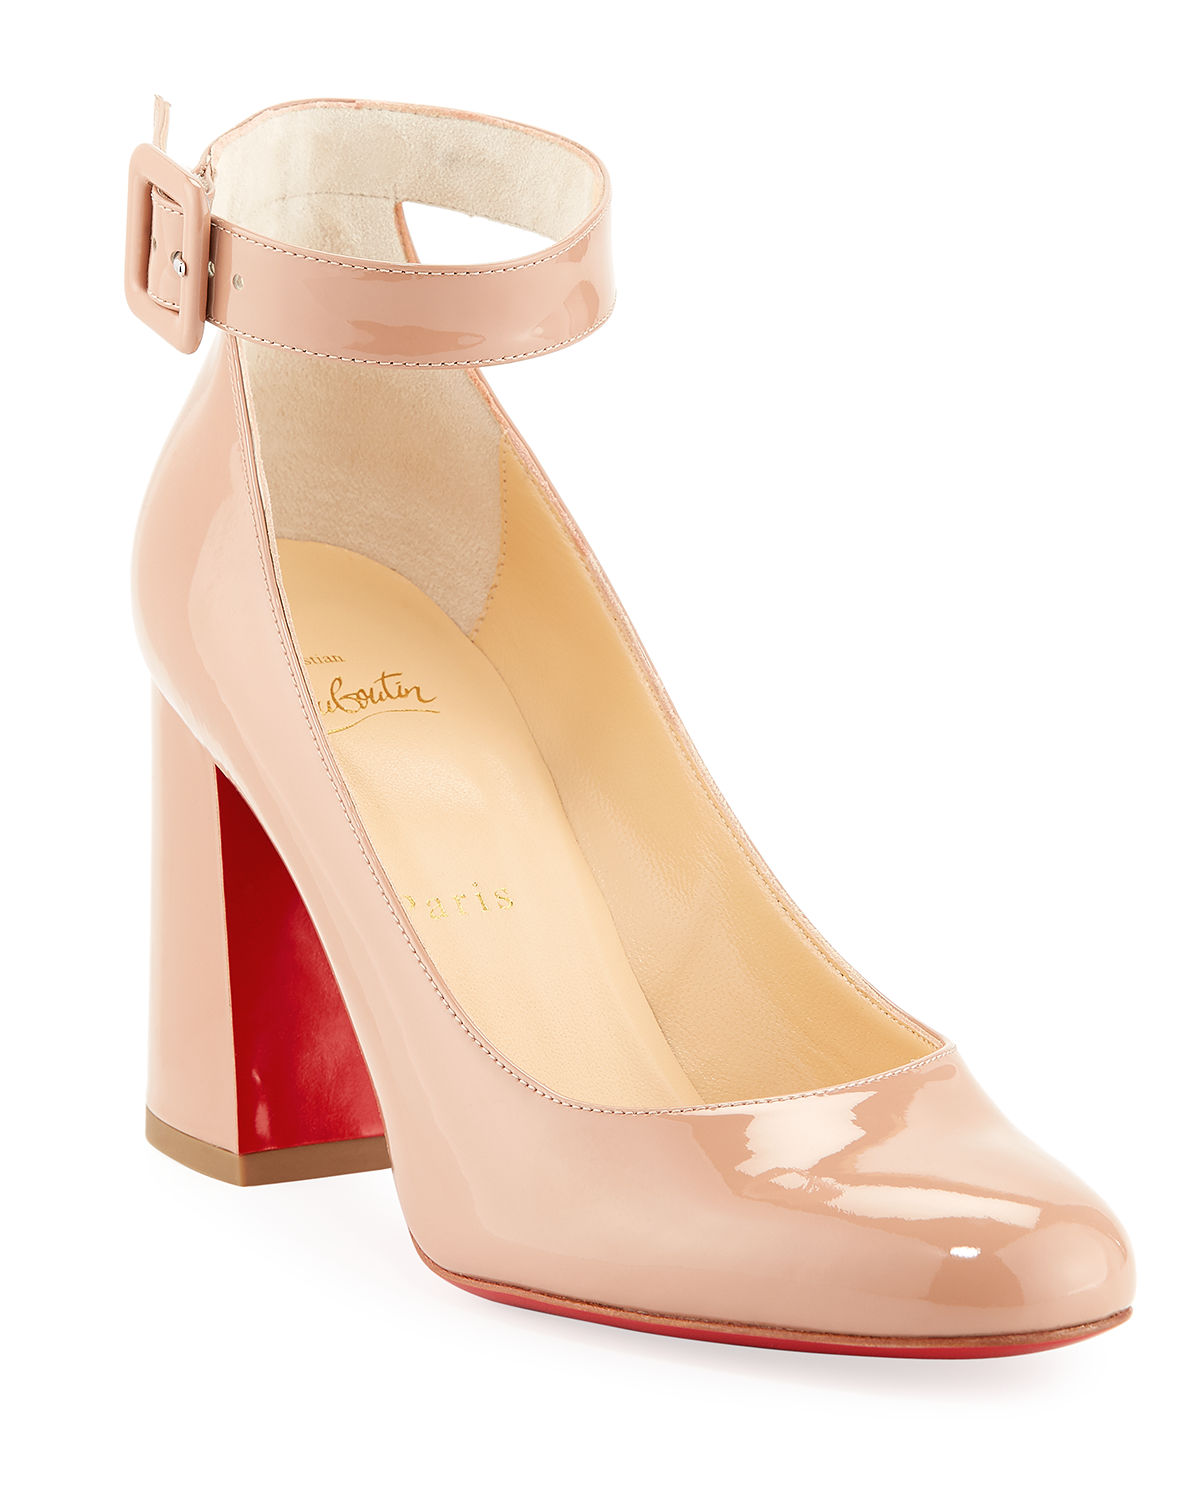 Christian Louboutin Naked Bow Red Sole Pumps | SCHUHE